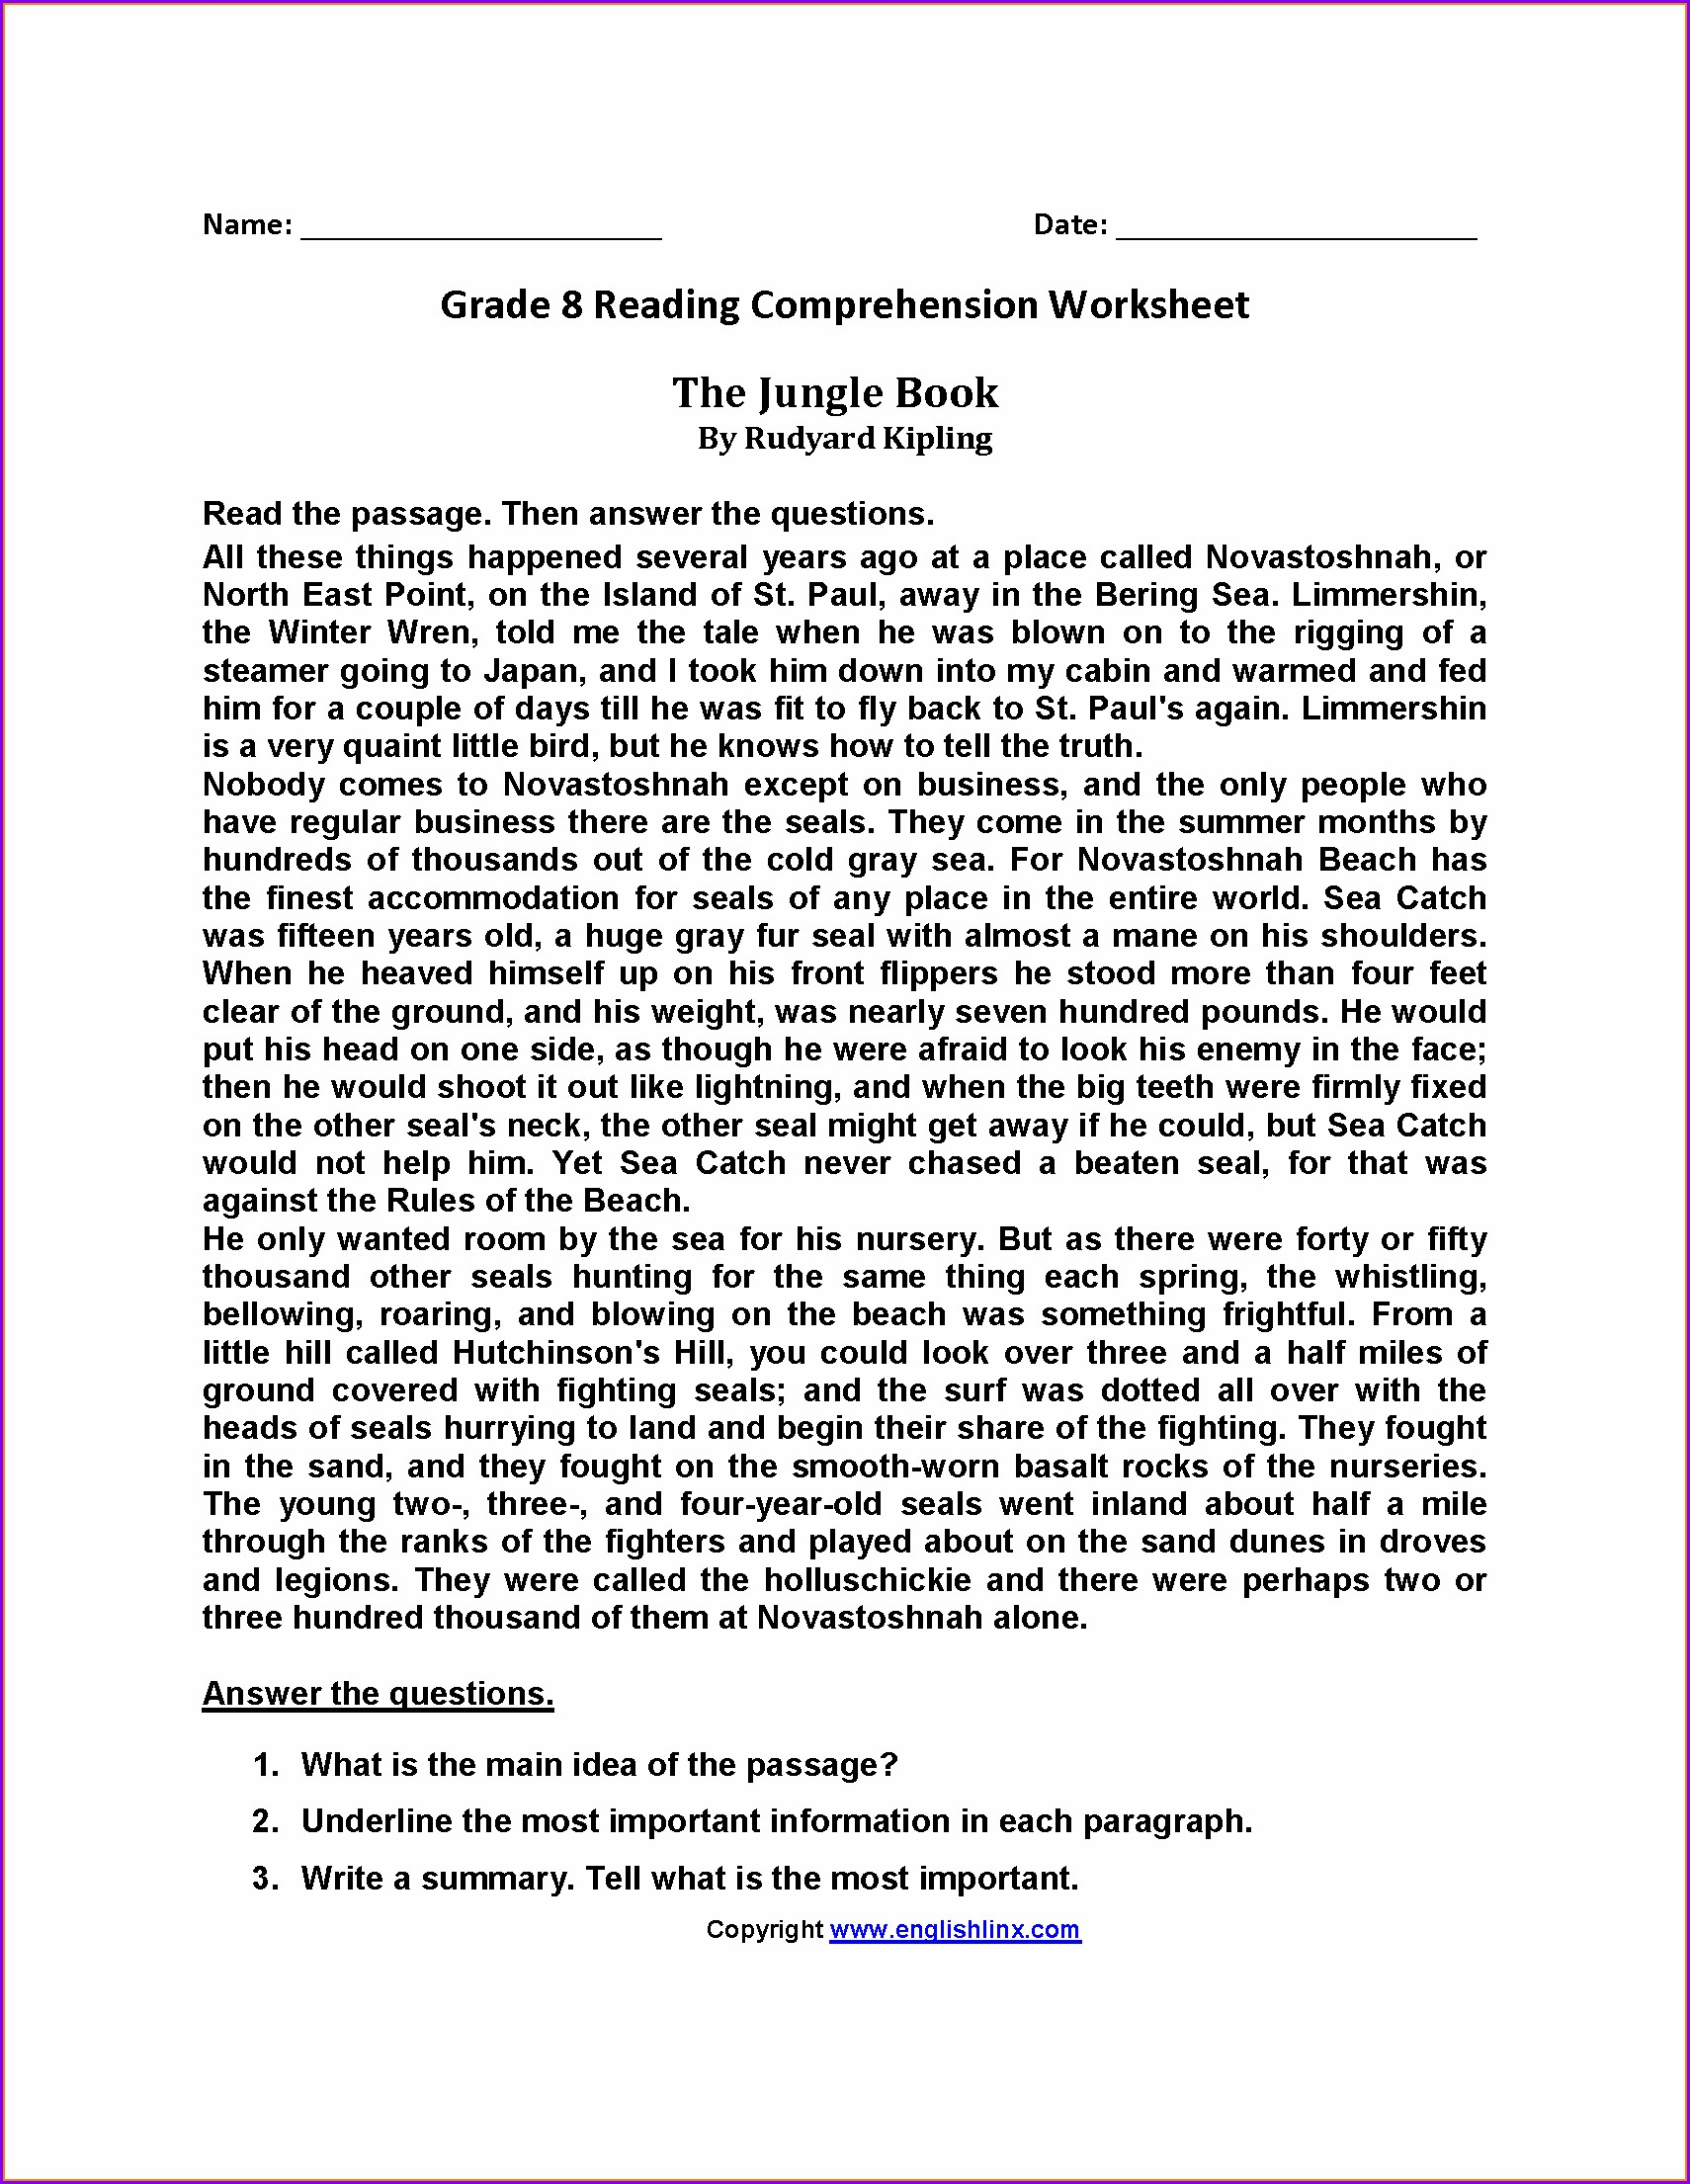 Printable Reading Comprehension Worksheets For 8th Grade